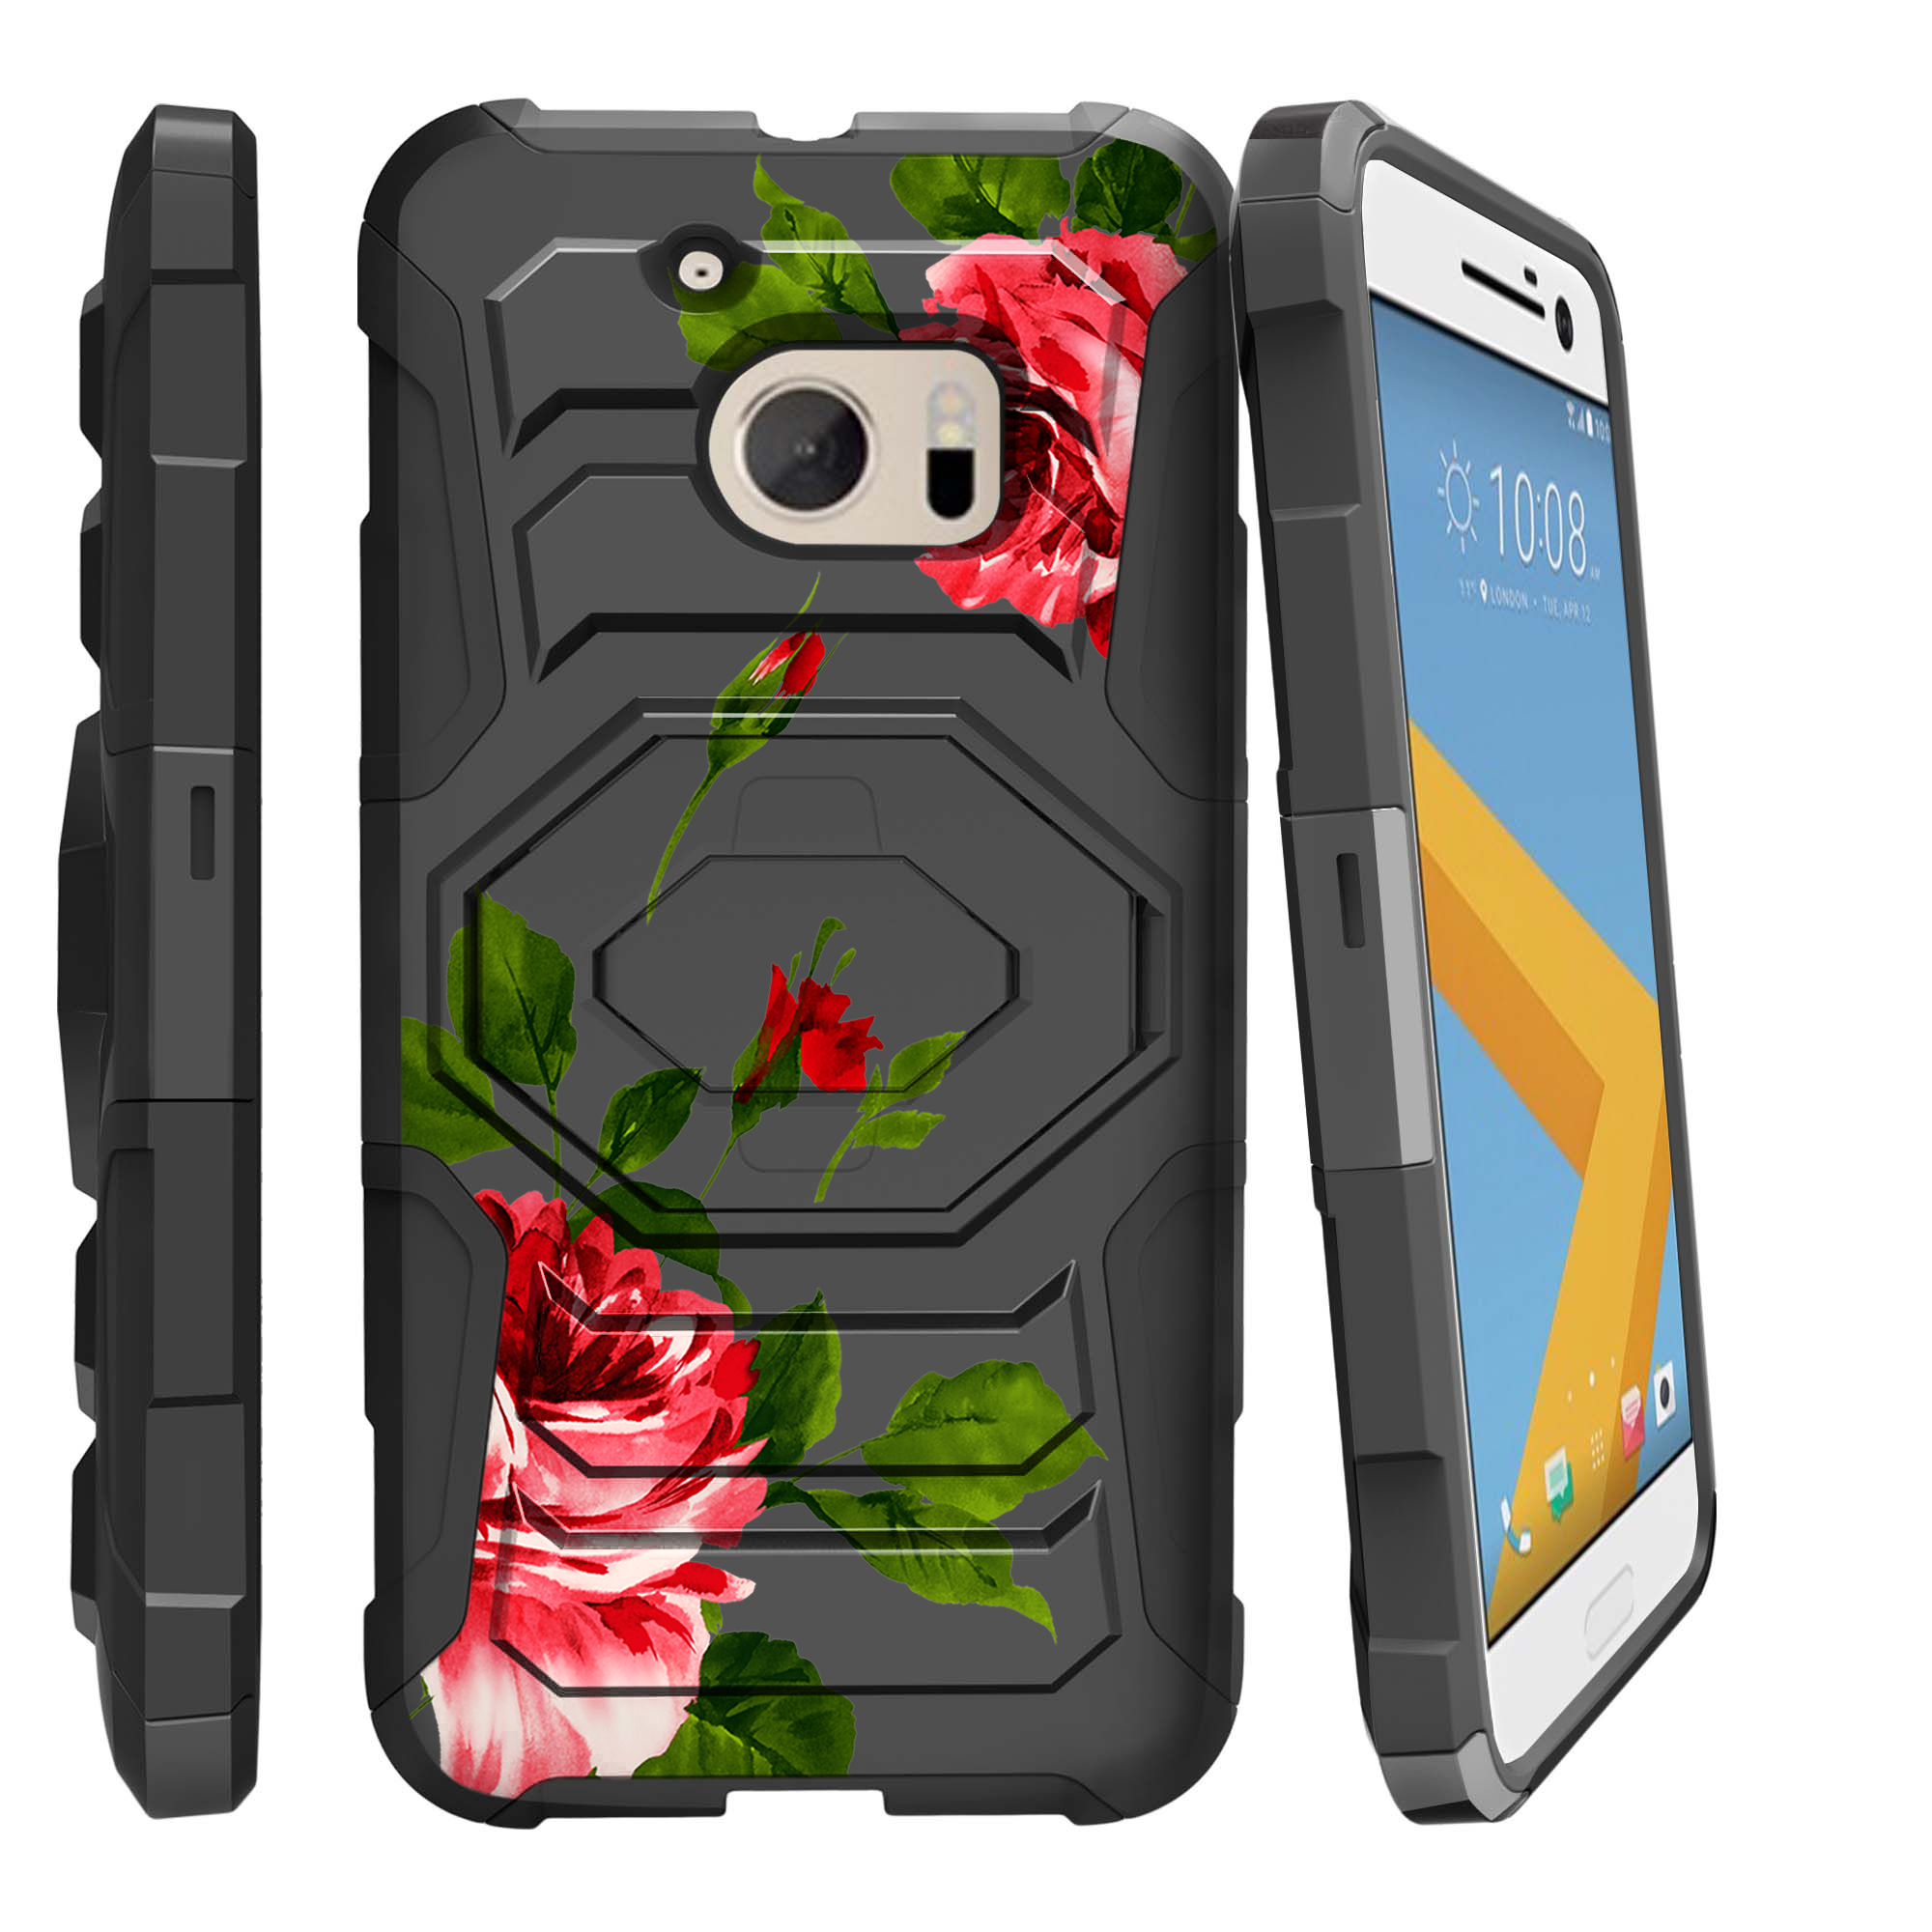 Case for HTC One M10   HTC Lifestyle Case [ Armor Reloaded ] Dual Layered Rugged Case with Kickstand and BONUS Holster - Affectionate Roses